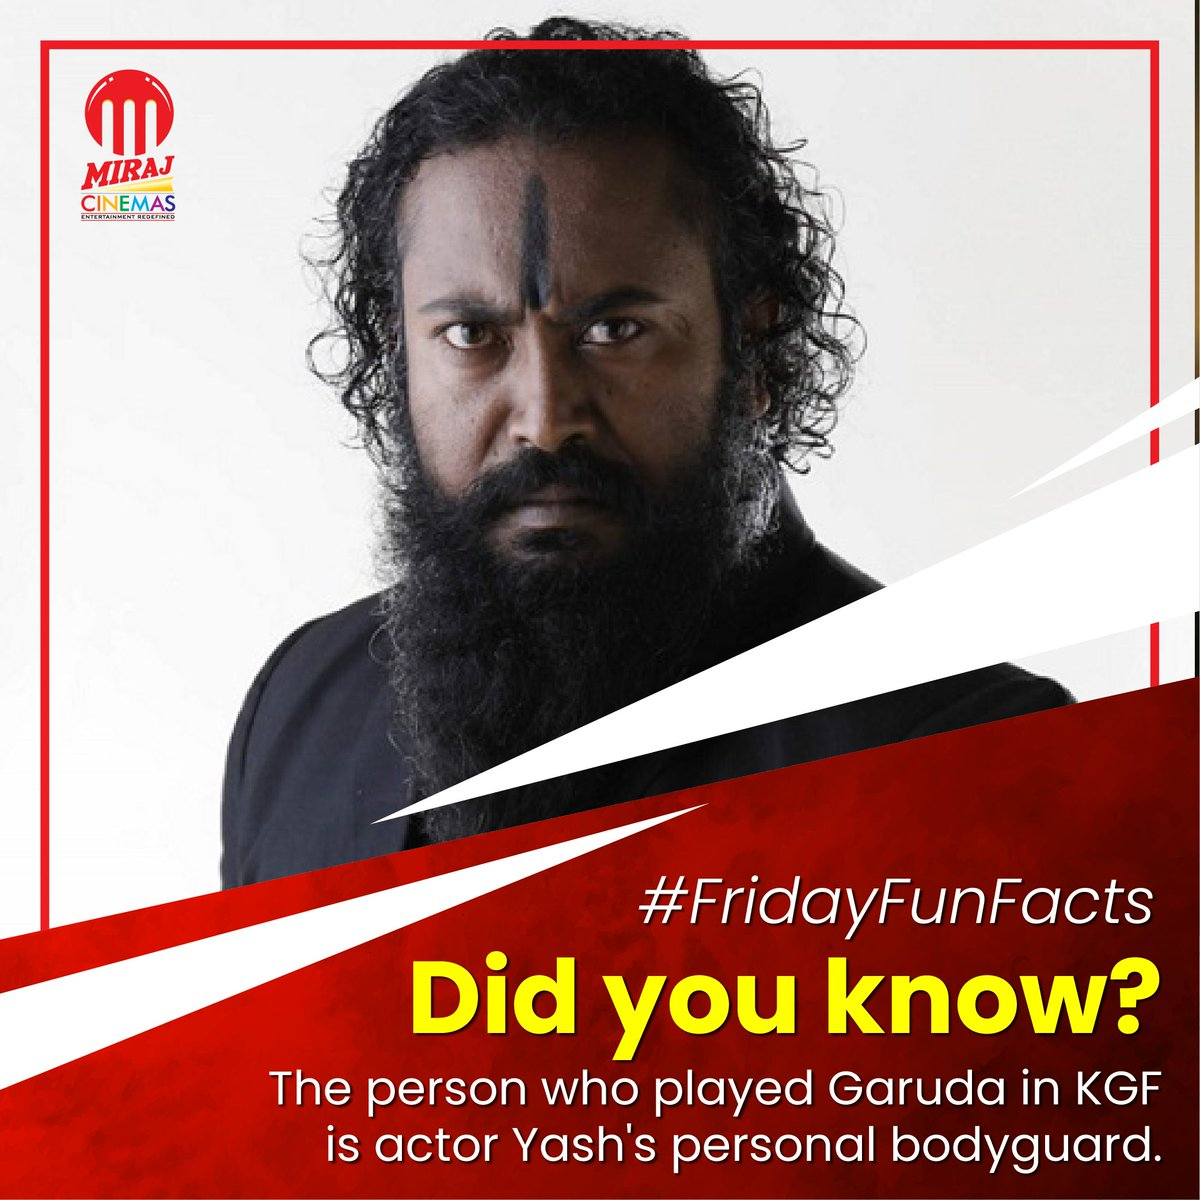 #DidYouKnow  Ram alias Ramachandra Raju, who played the role of #Garuda in #KGF: Chapter 1 was actually not an actor but a long-time associate and bodyguard of @TheNameIsYash  #FridayFunFacts #KGFChapter1 #KGFChapter2 #rockingstaryash